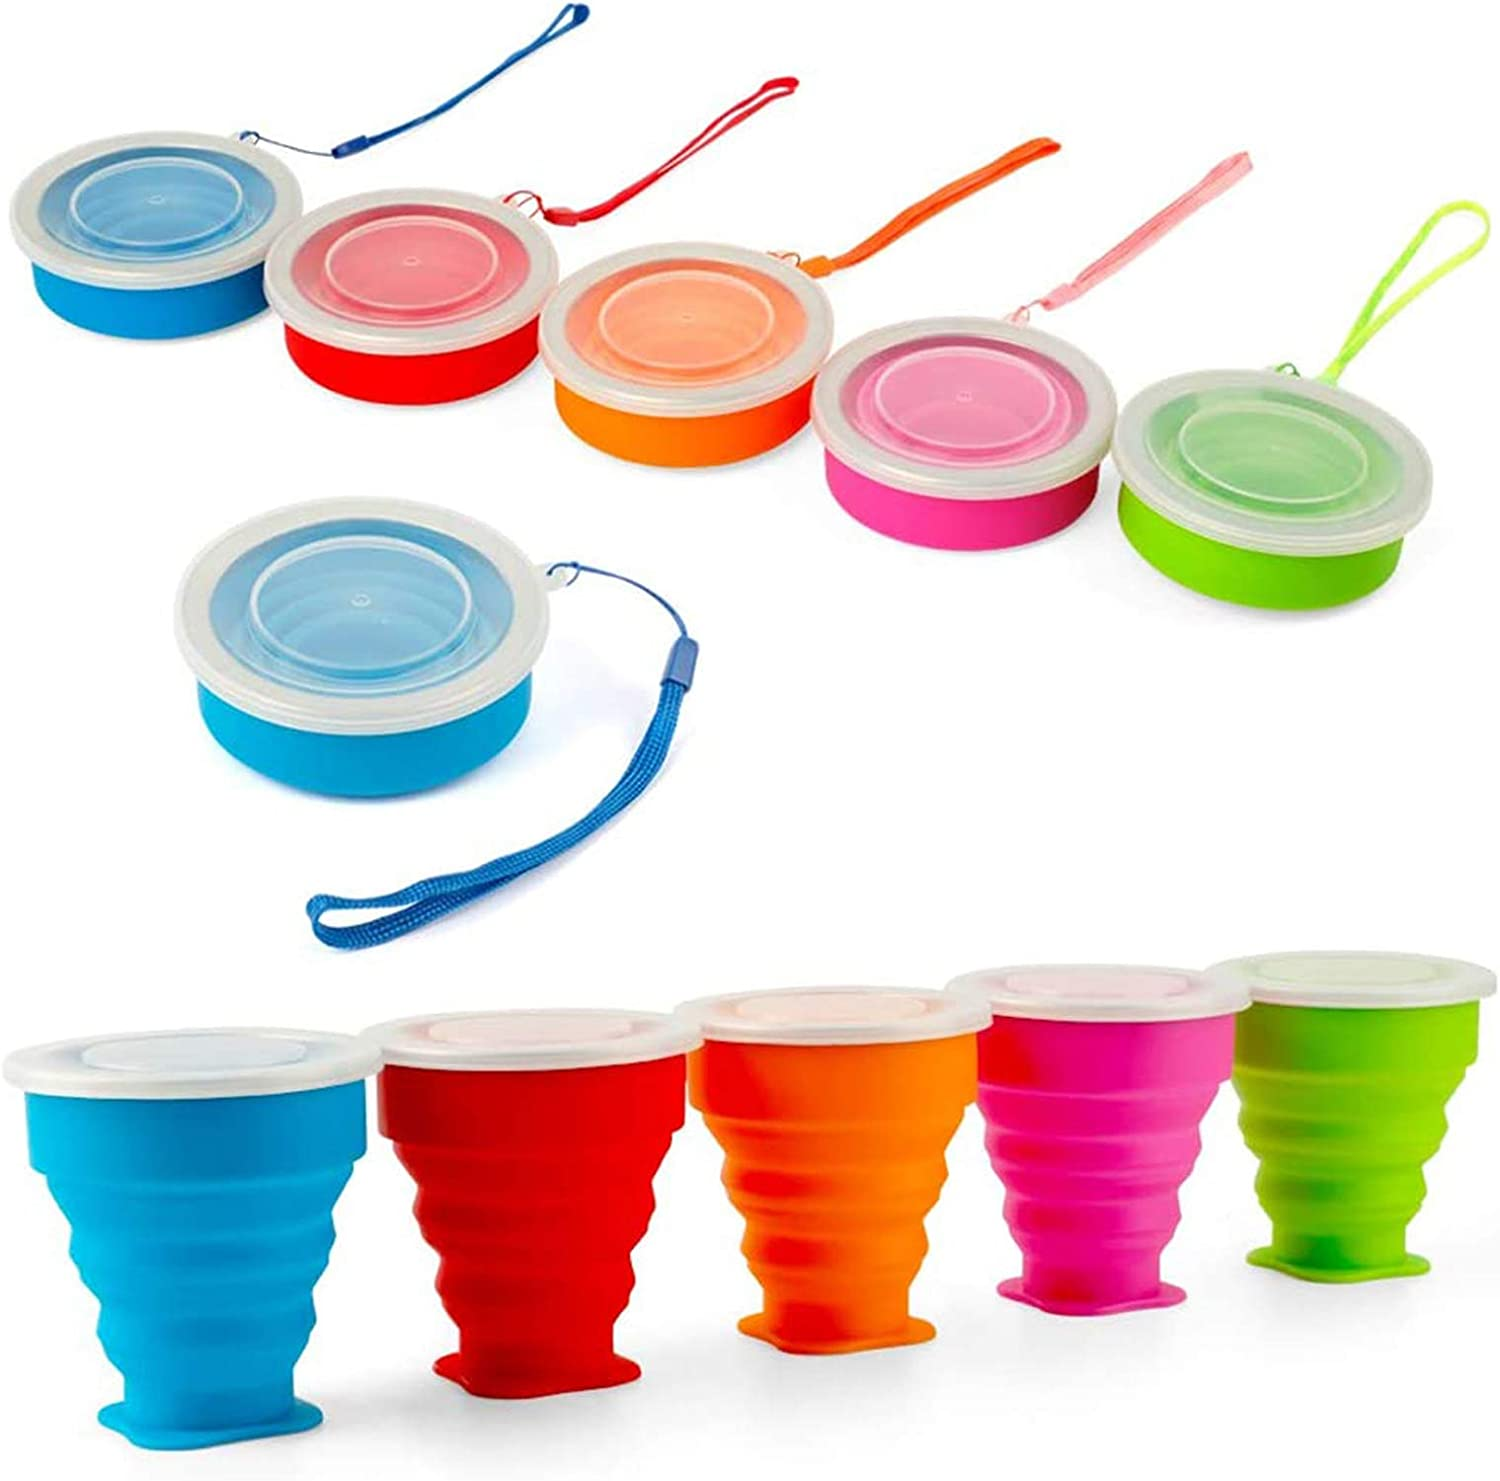 Shebaking Denver Mall Set Japan Maker New of 5 Collapsible Cup Folding P Silicone Travel